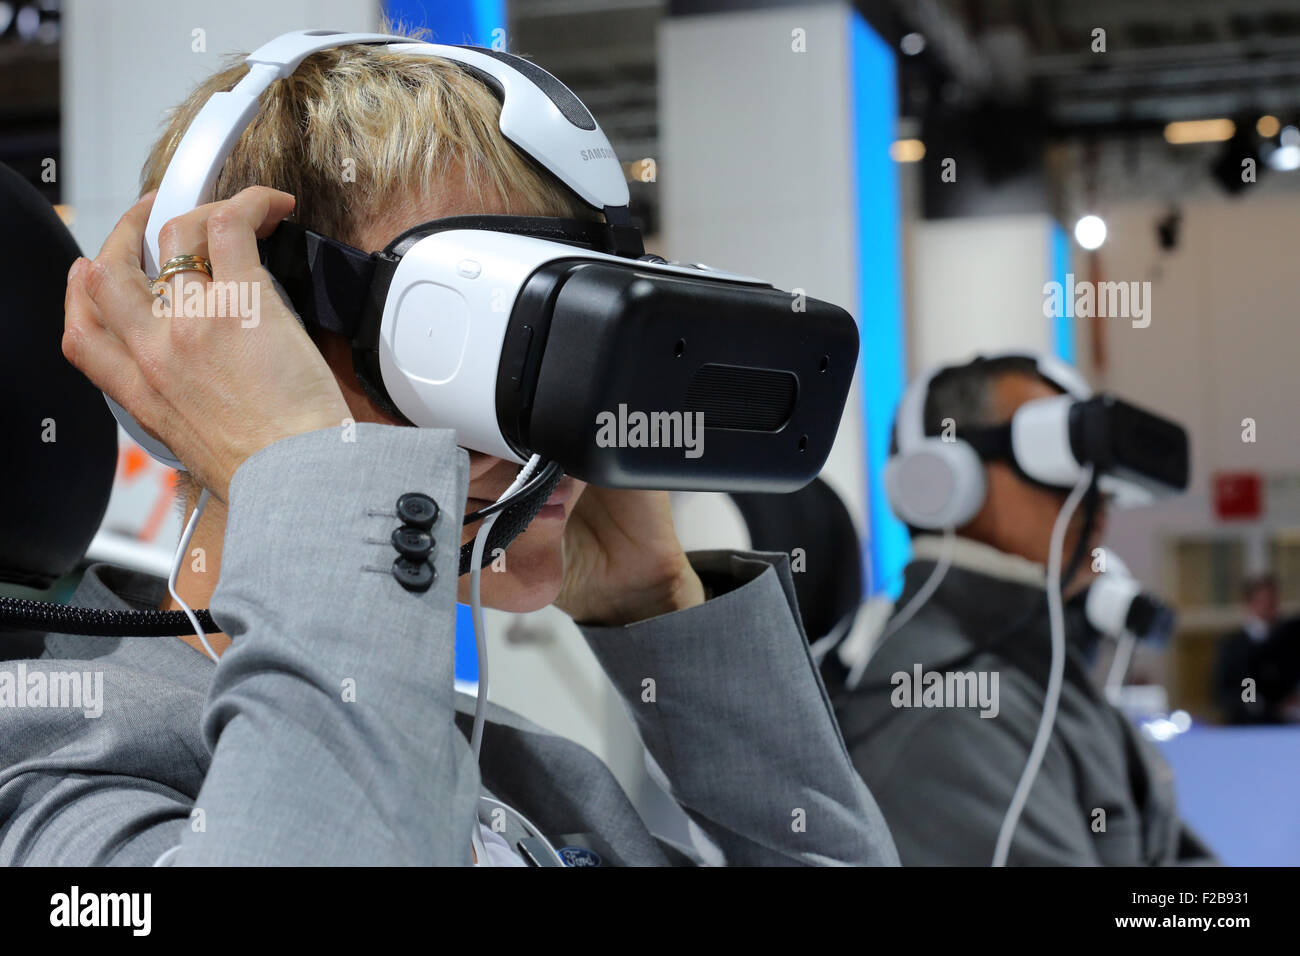 Frankfurt/M, 15.09.2015 - Visitors take a virtual test drive with masks at the Ford stand at the 66th International Motor Show IAA 2015 (Internationale Automobil Ausstellung, IAA) in Frankfurt/Main, Germany Stock Photo